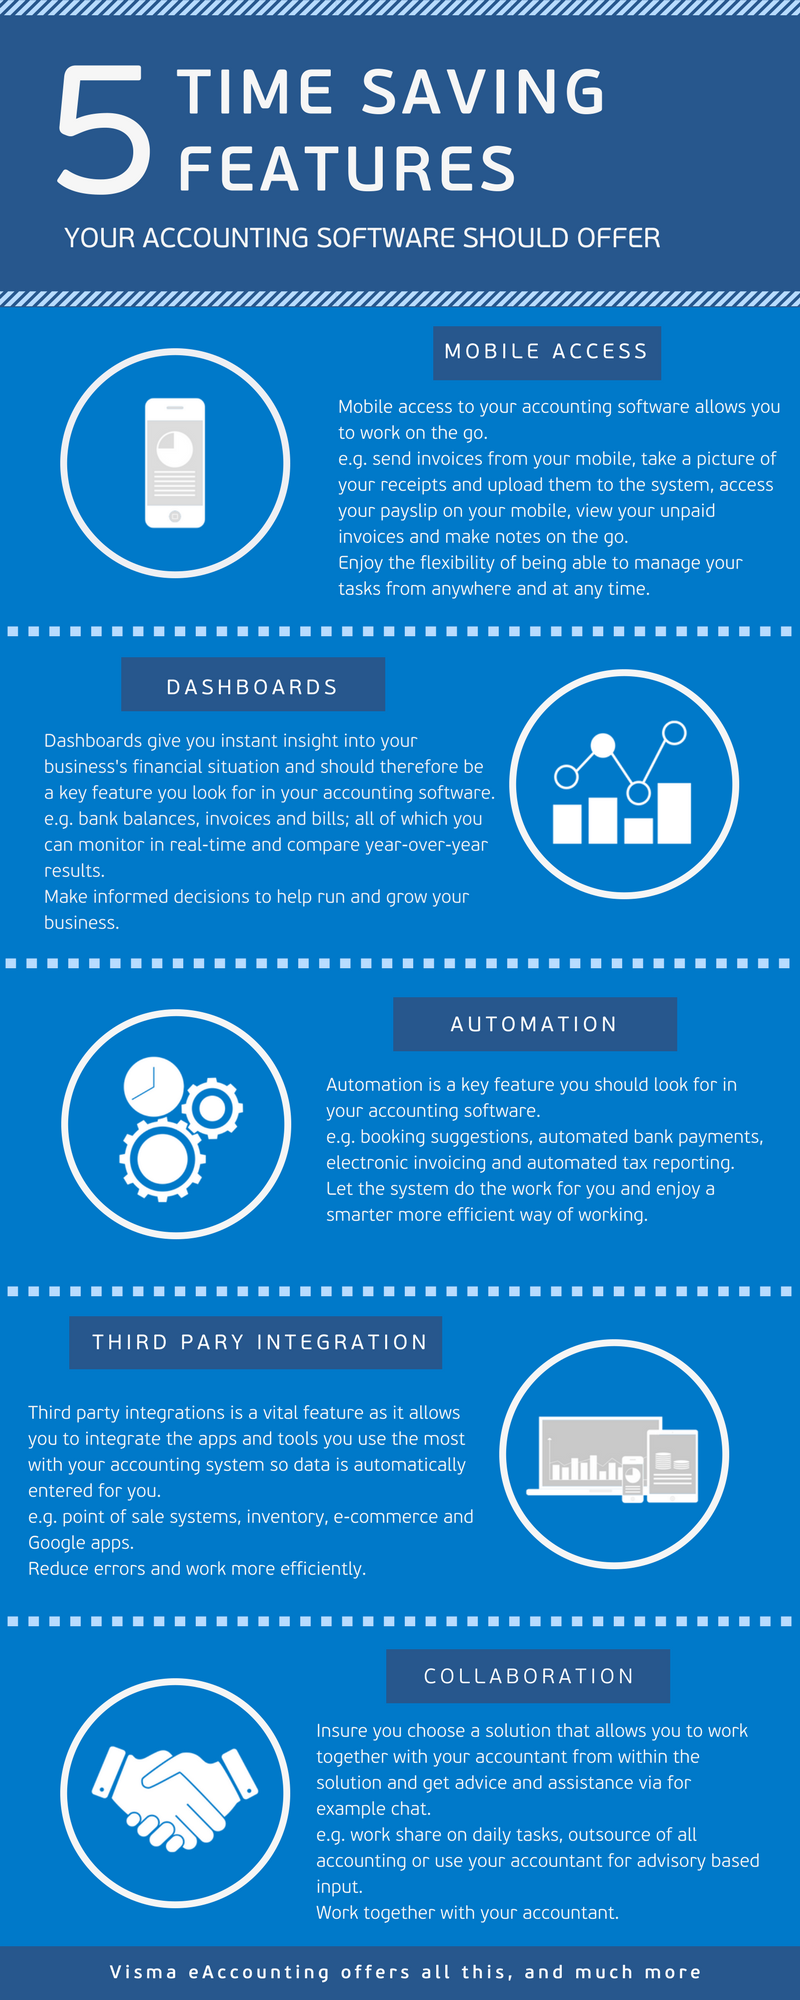 Infographic: 5 time saving features your accounting software should offer